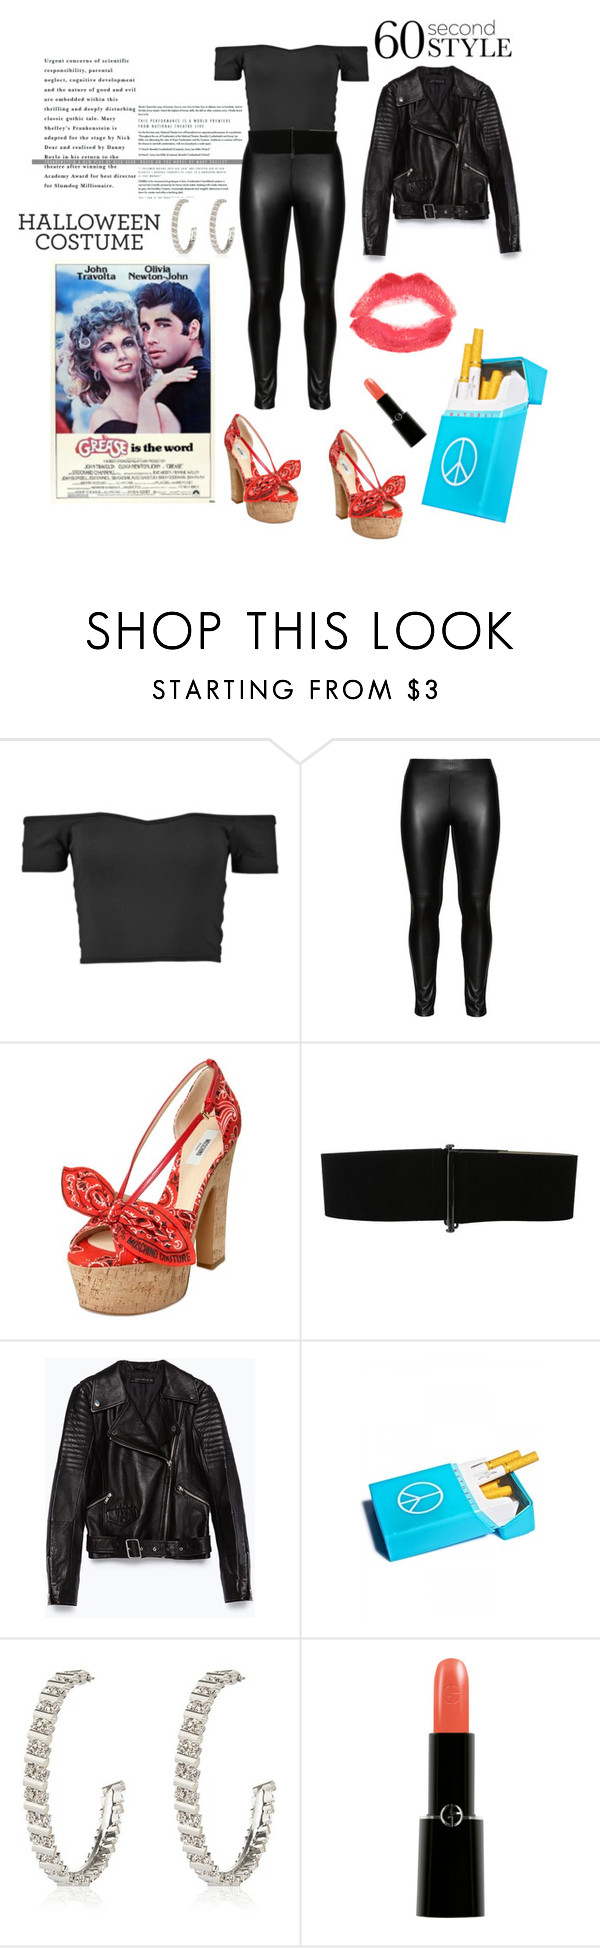 """Sandy from Grease"" by lauren-cannon ❤ liked on Polyvore featuring Studio, Moschino, Vince Camuto, Zara, River Island, Giorgio Armani, Topshop, Grease, sandy and 60secondstyle"